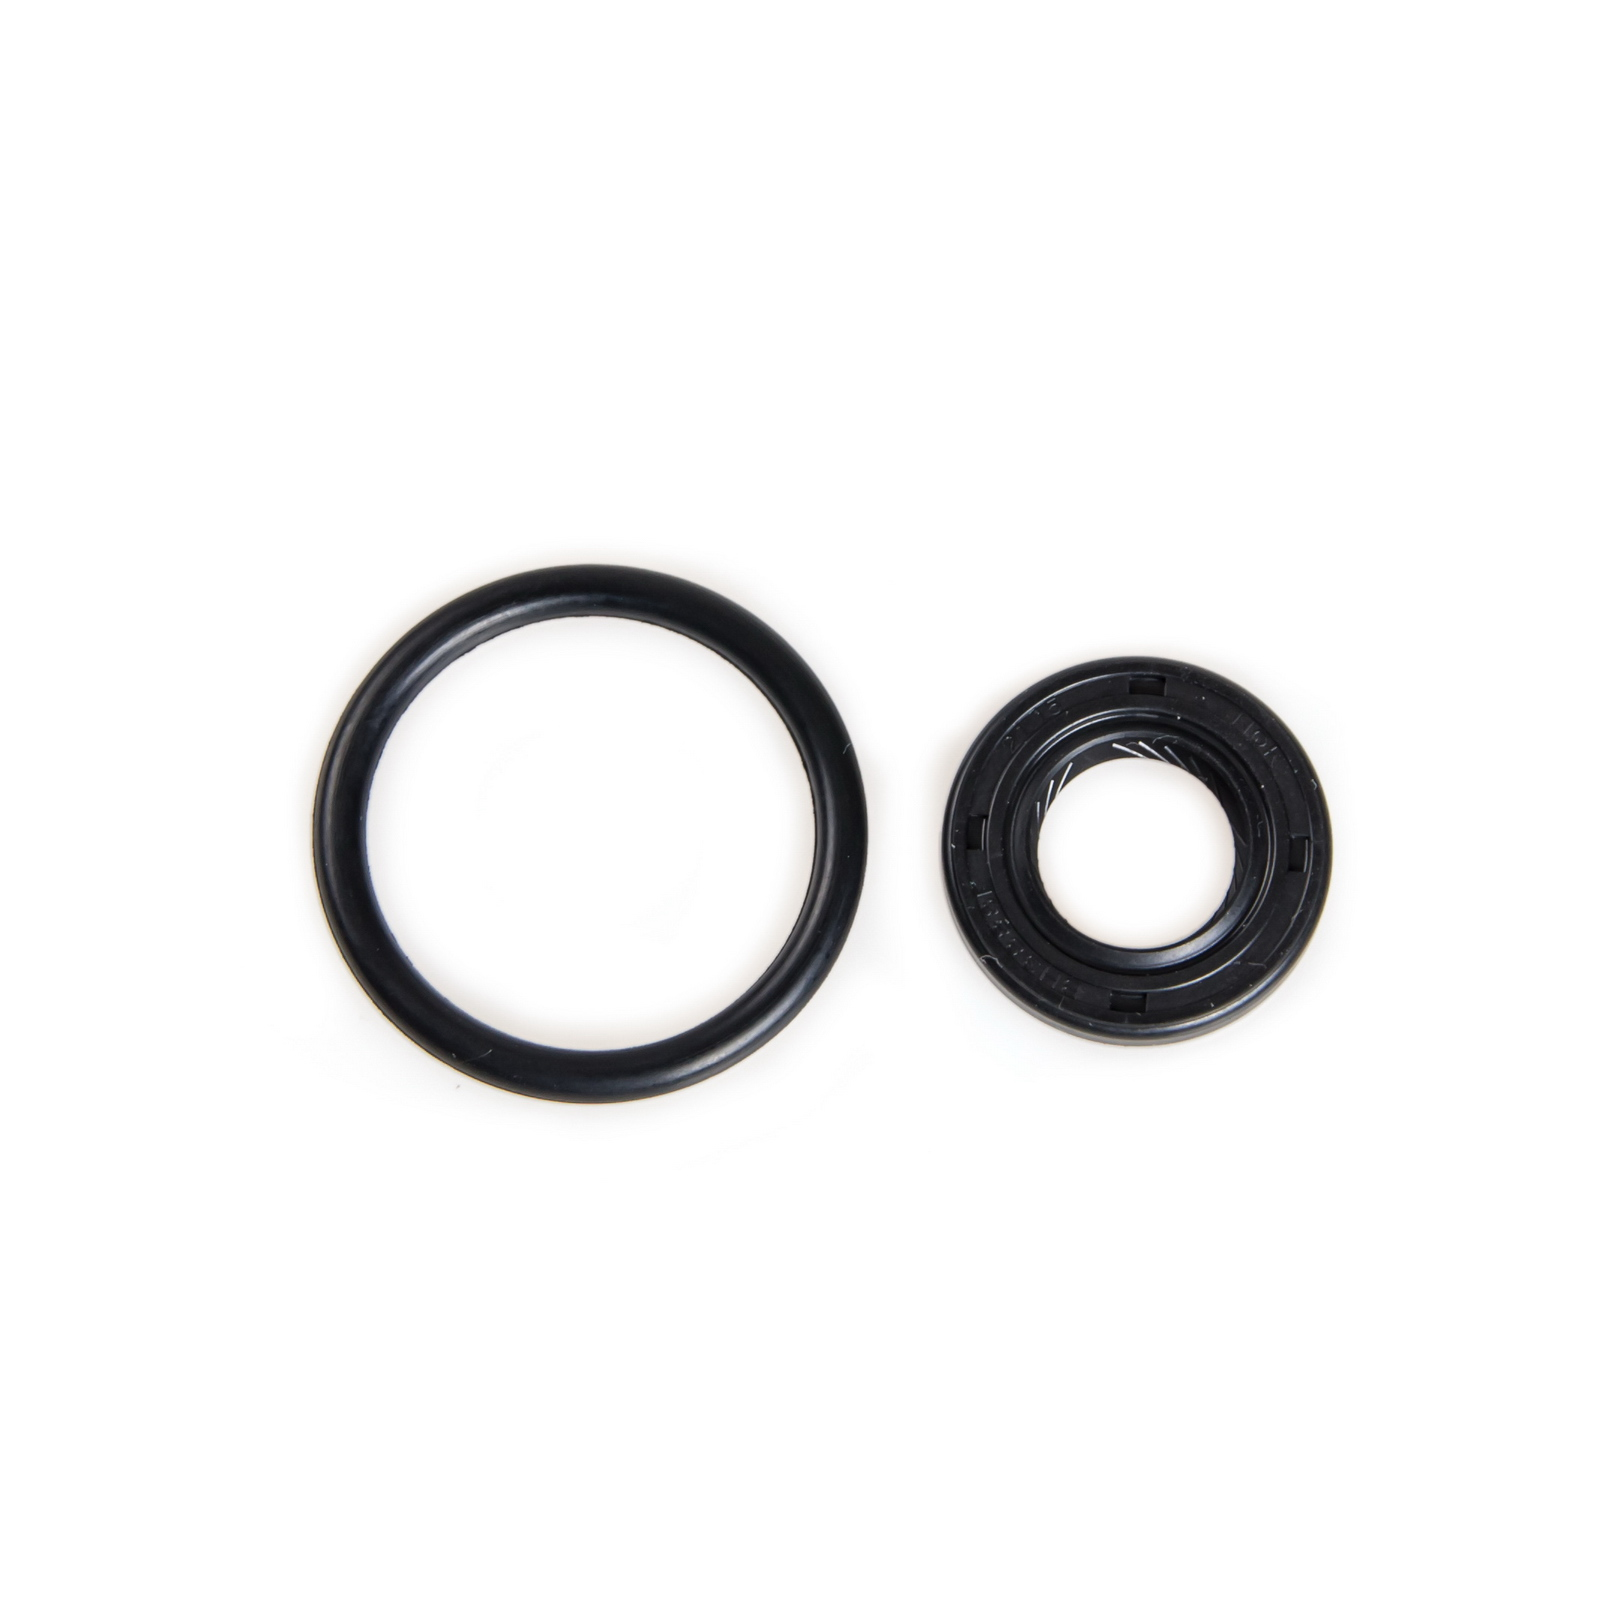 2x Distributor Oil O-ring Seals Fits Acura Integra LS RS